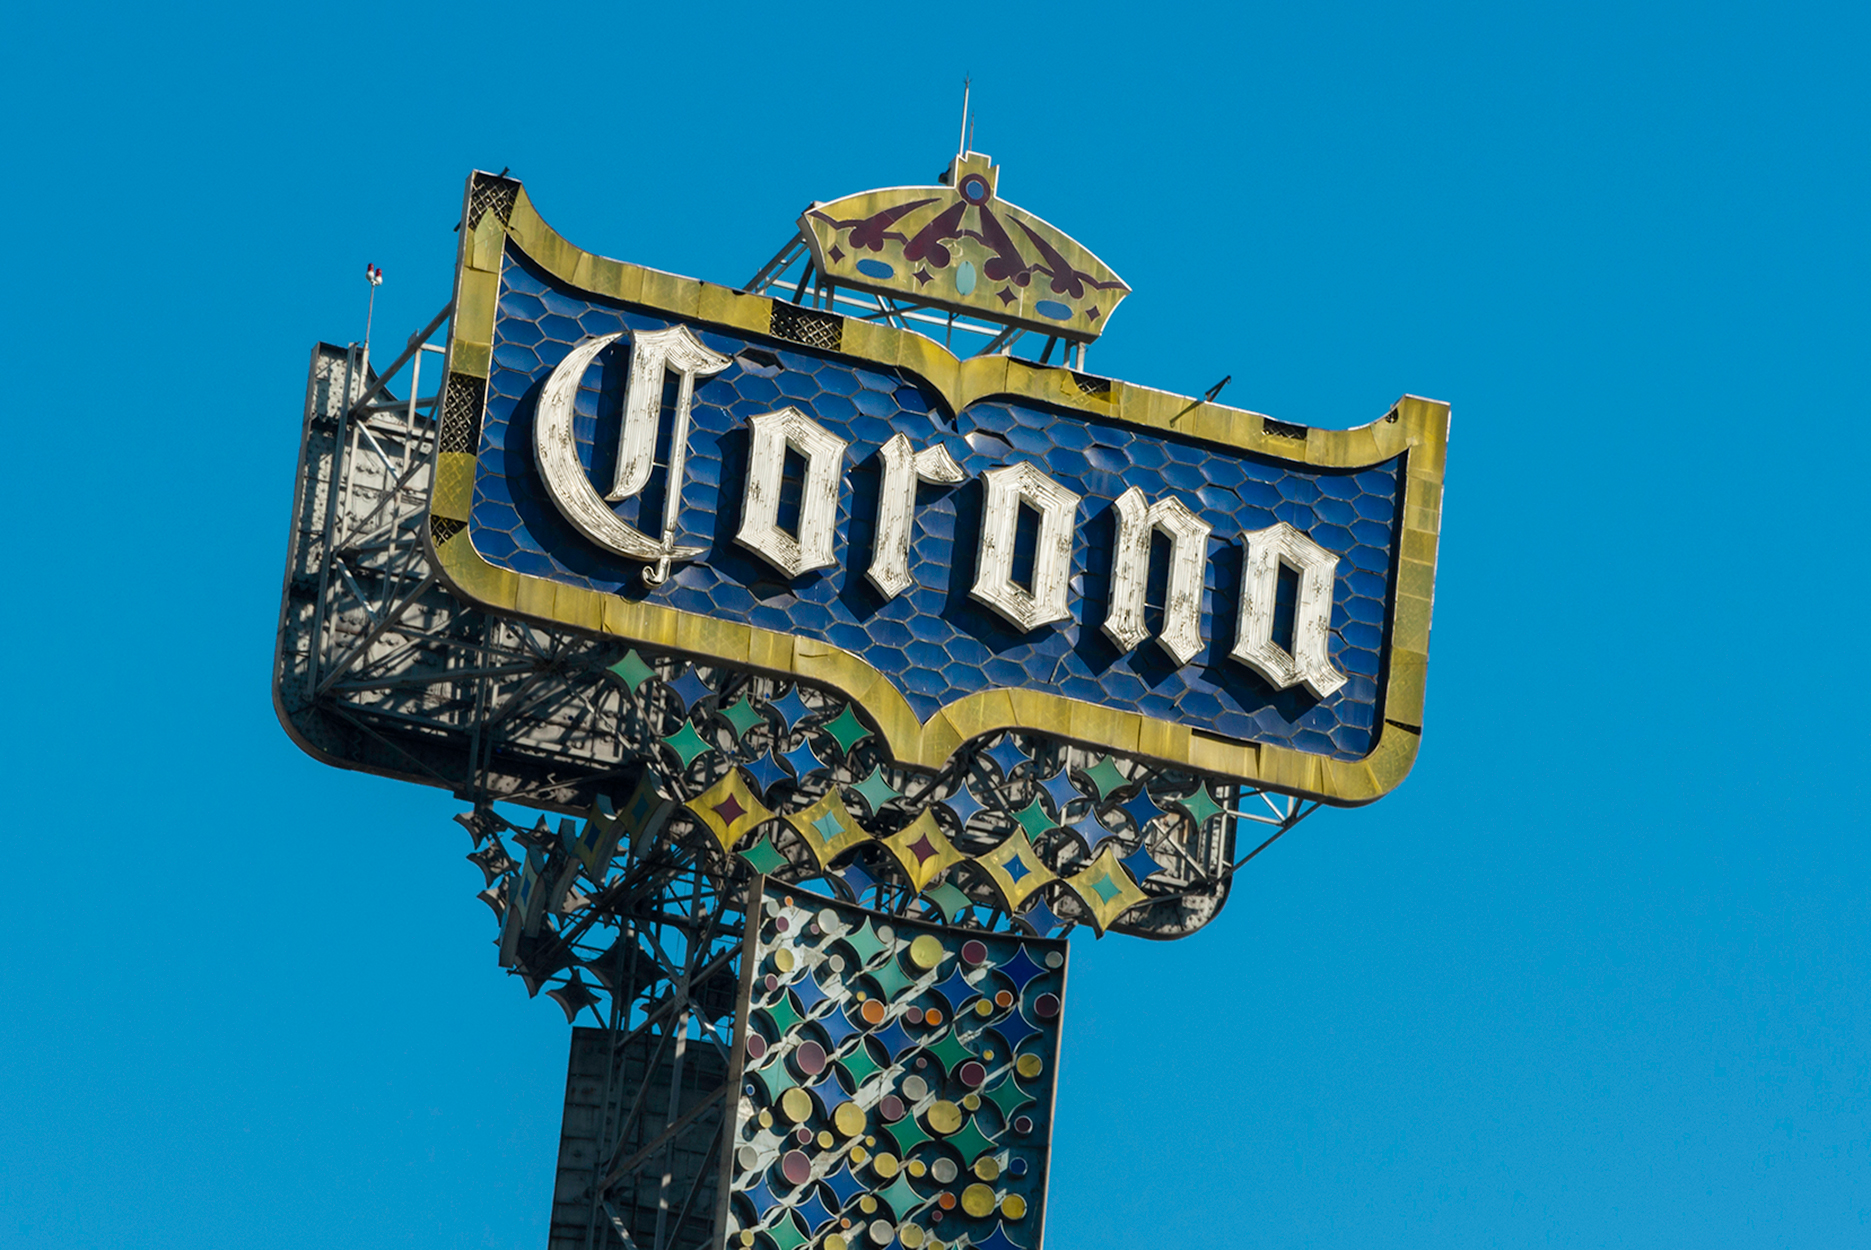 Corona Beer Production Temporarily Suspended in Mexico